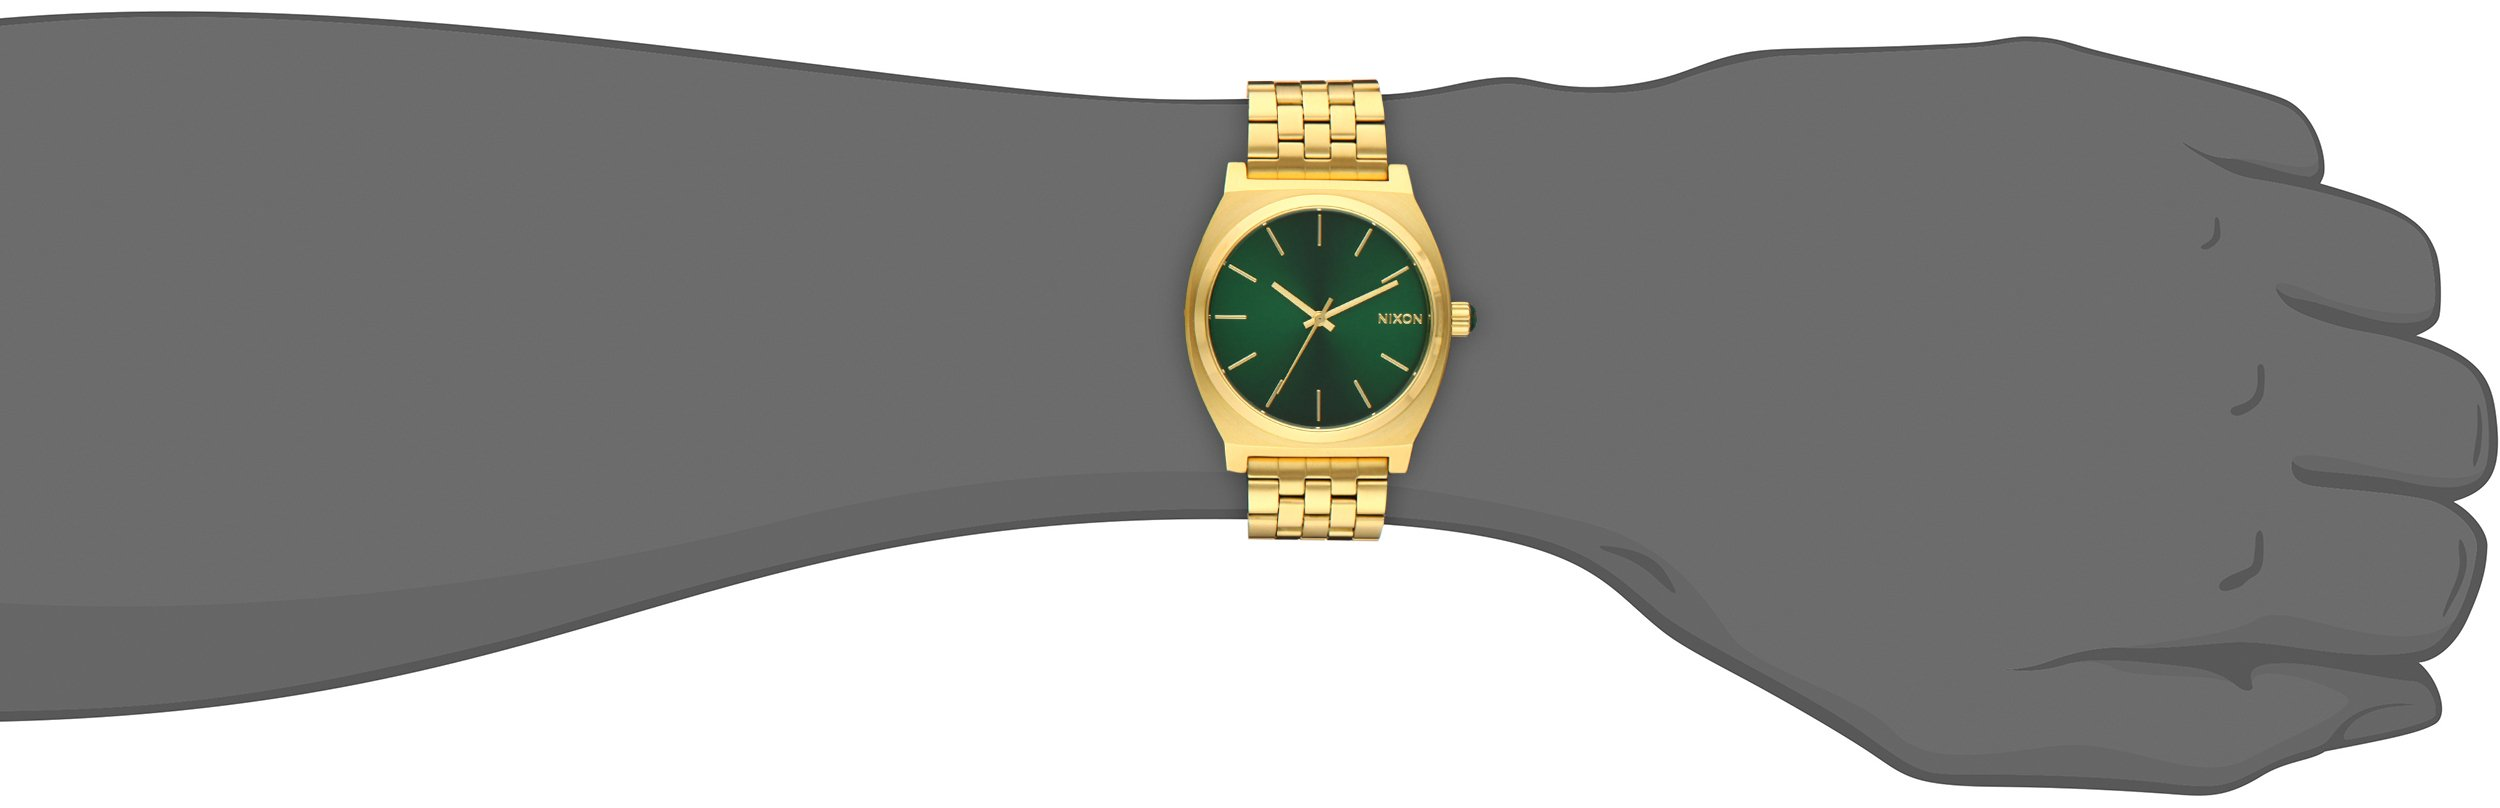 Nixon Time Teller A0451919-00. Gold and Green Women's Watch (37mm. Gold Metal Band/Green Sunray Watch Face) by NIXON (Image #2)